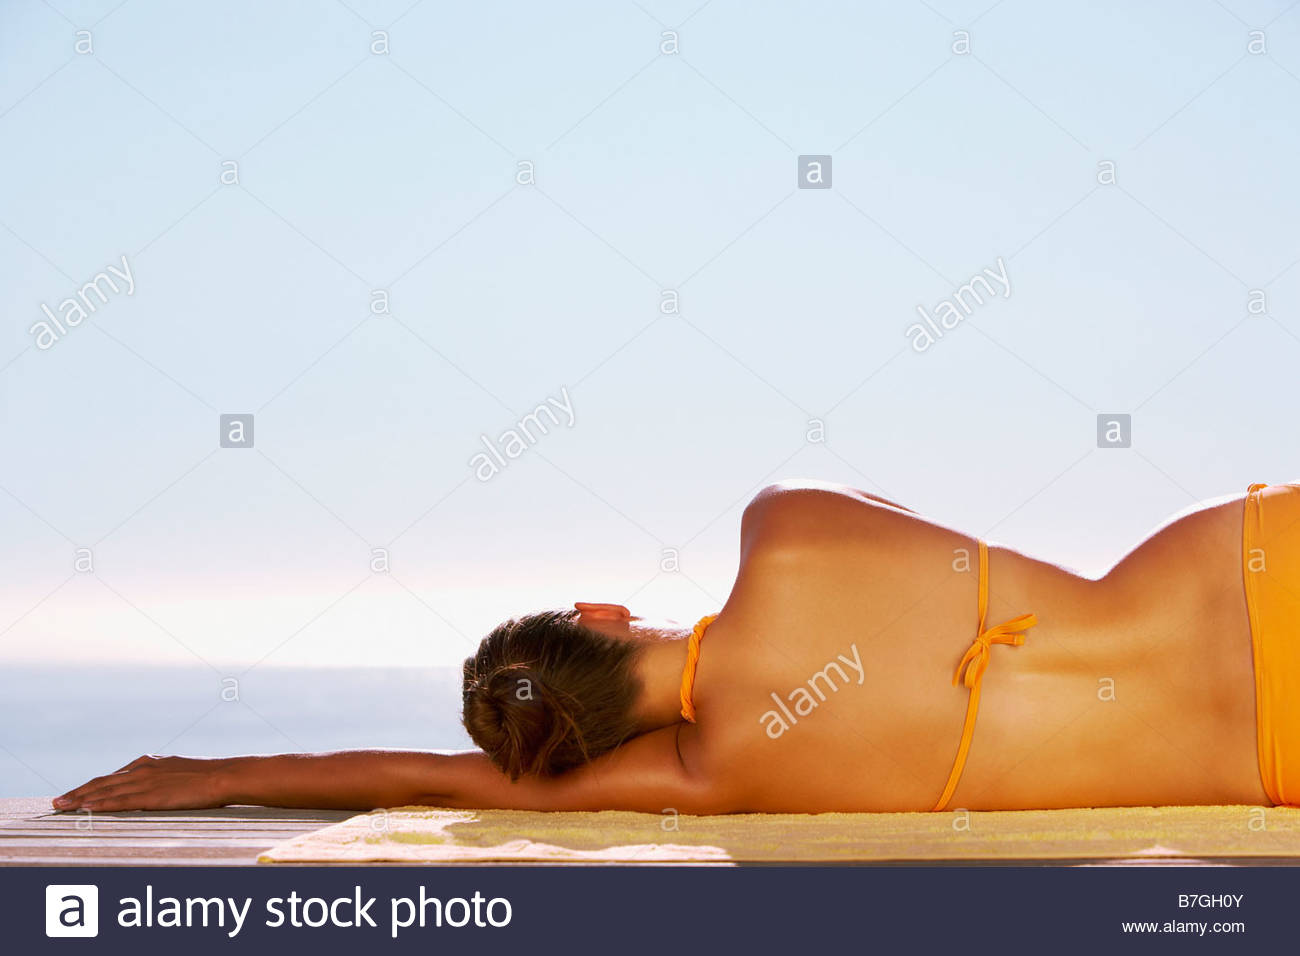 '20-25 Years,20s,Adults Only,Beach Towel,Beauty in Nature,Behind,Bikini,Color Image,Comfortable,Copy - Stock Image